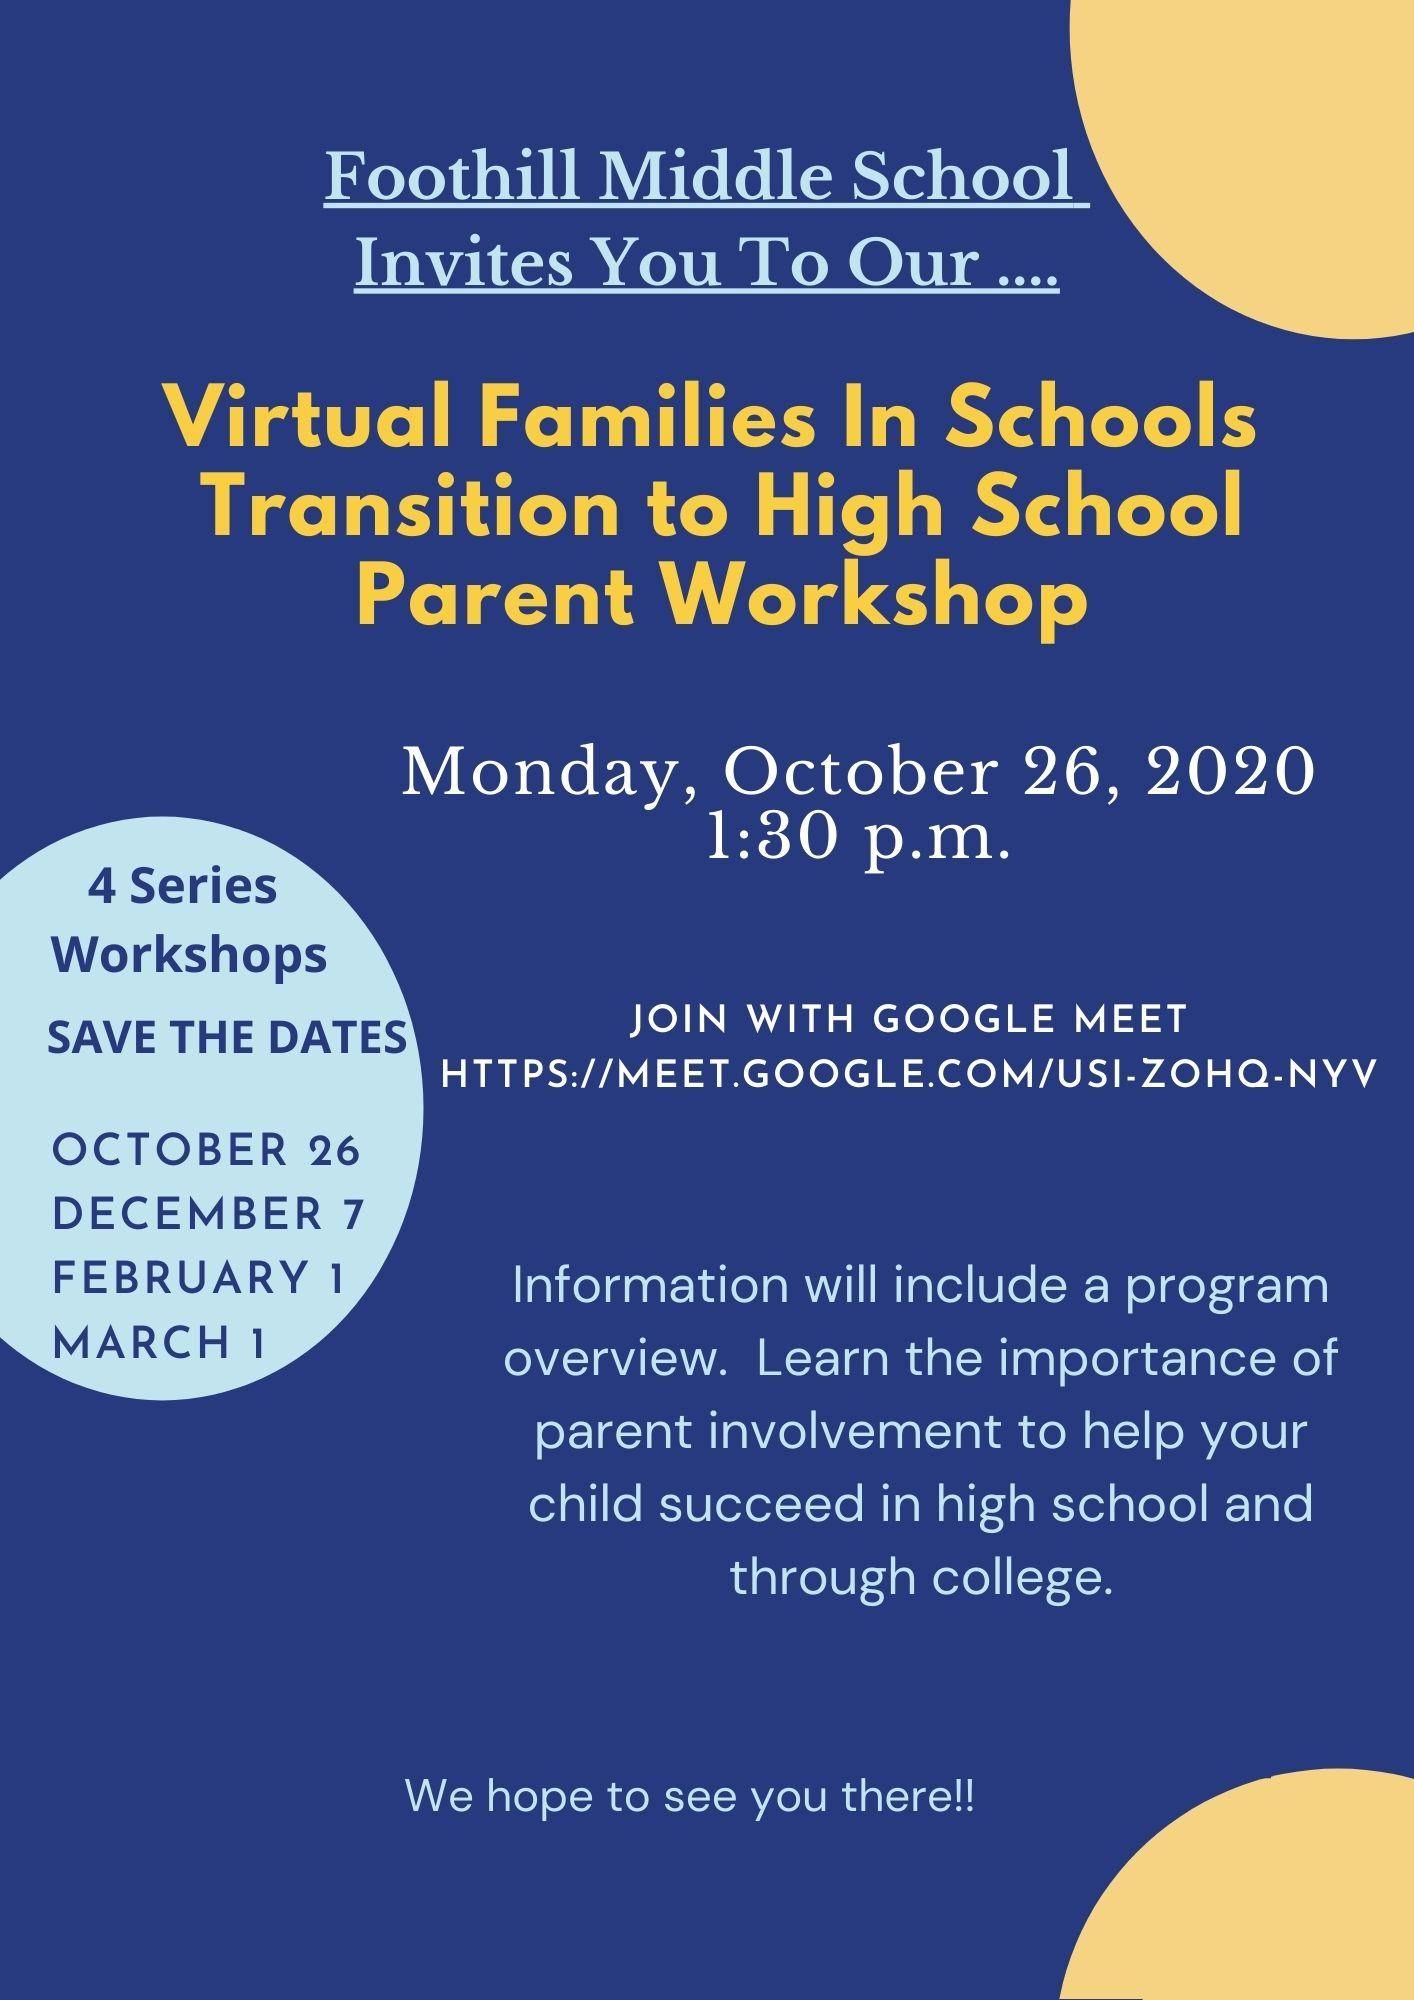 FMS's Virtual Families in Schools Workshop